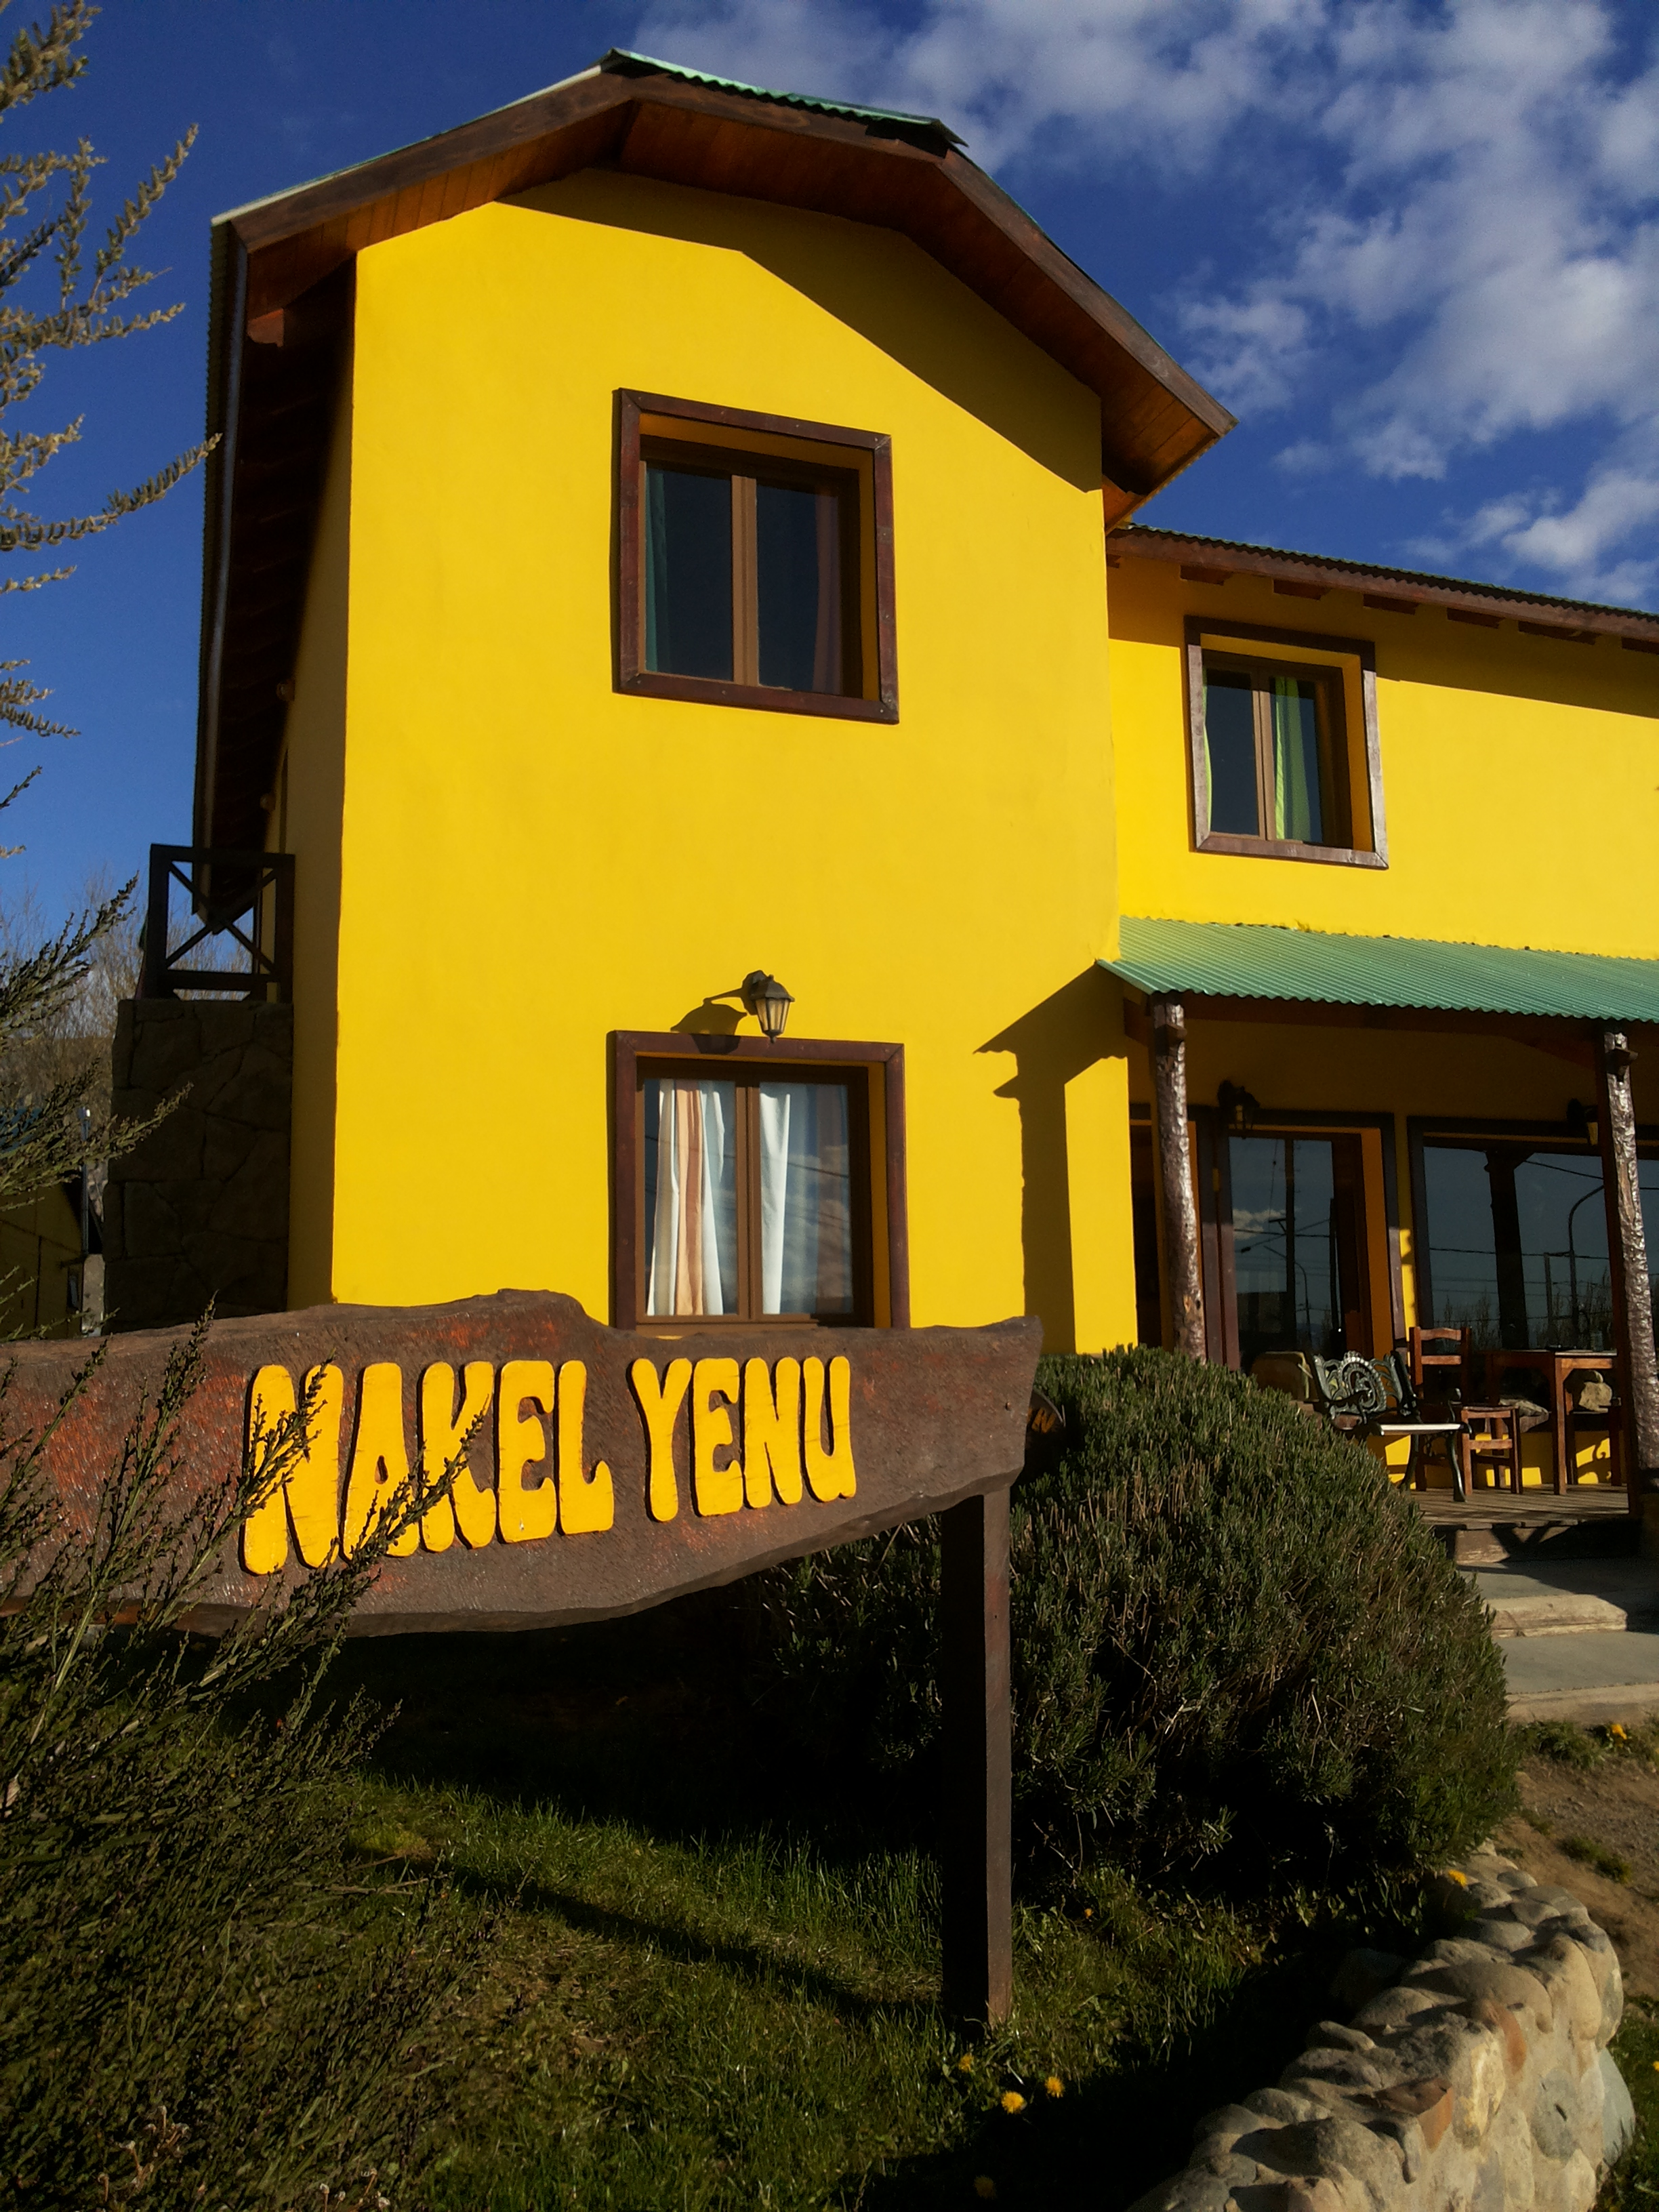 Hostel Nakel Yenu